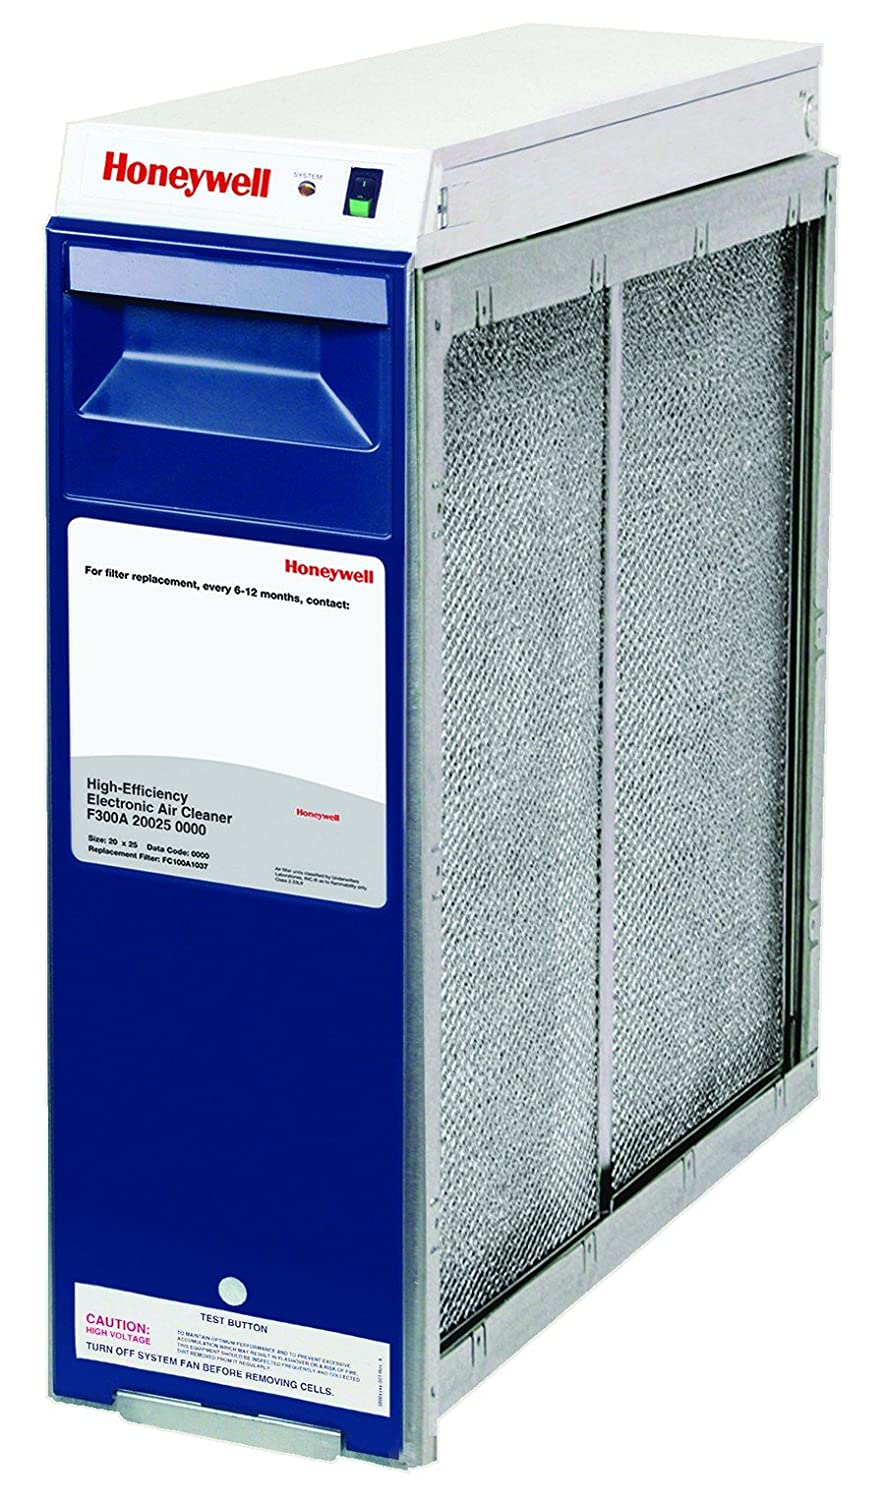 Honeywell F300A2025 Electronic Air Cleaner 20X25 2000 CFM: Replacement  Furnace Filters: Amazon.com: Industrial & Scientific